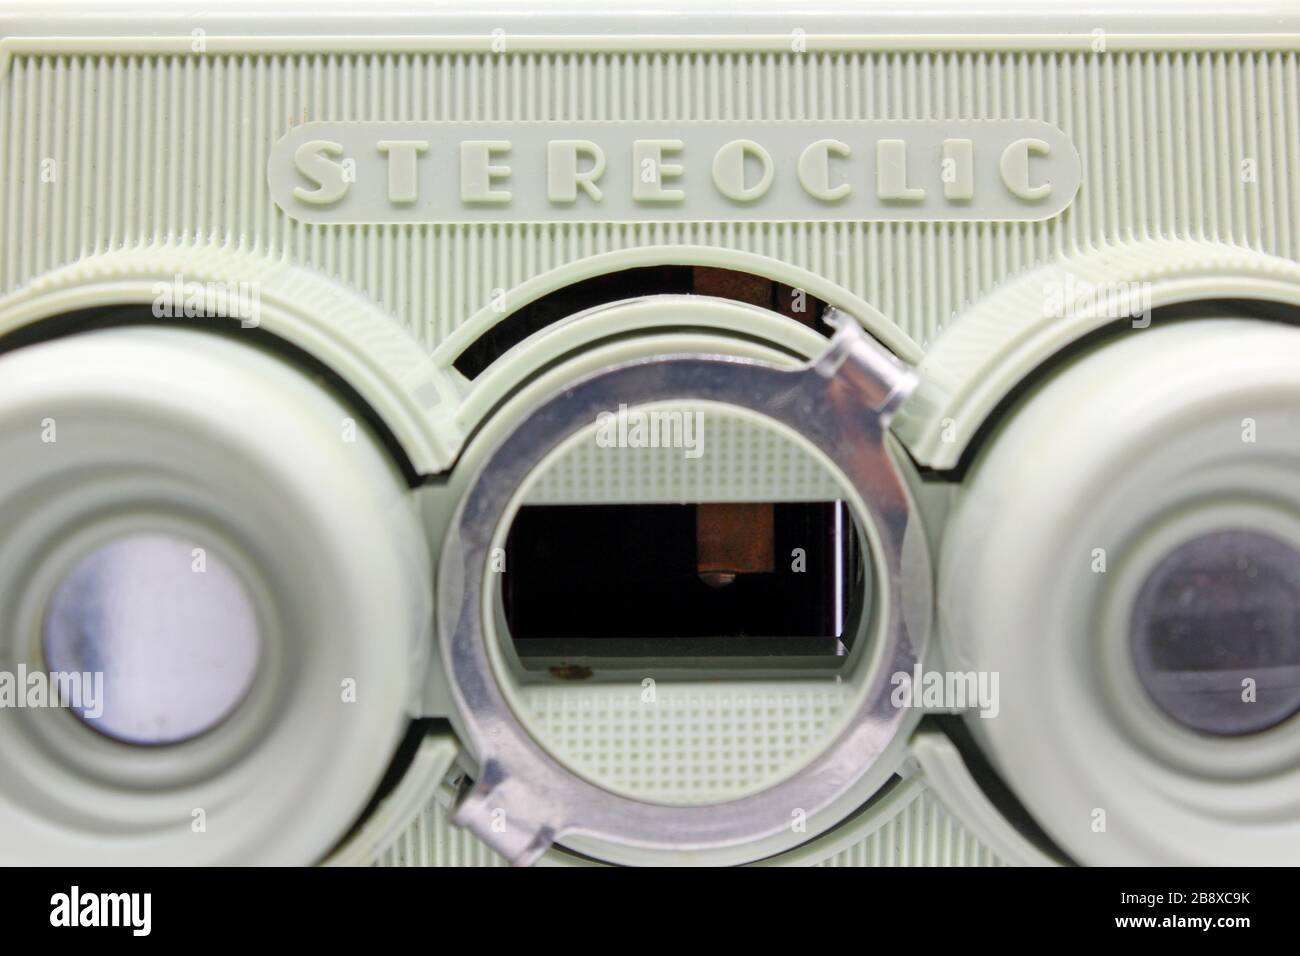 Vintage stereoscopic slide viewer, front view, isolated on white background, close-up Stock Photo